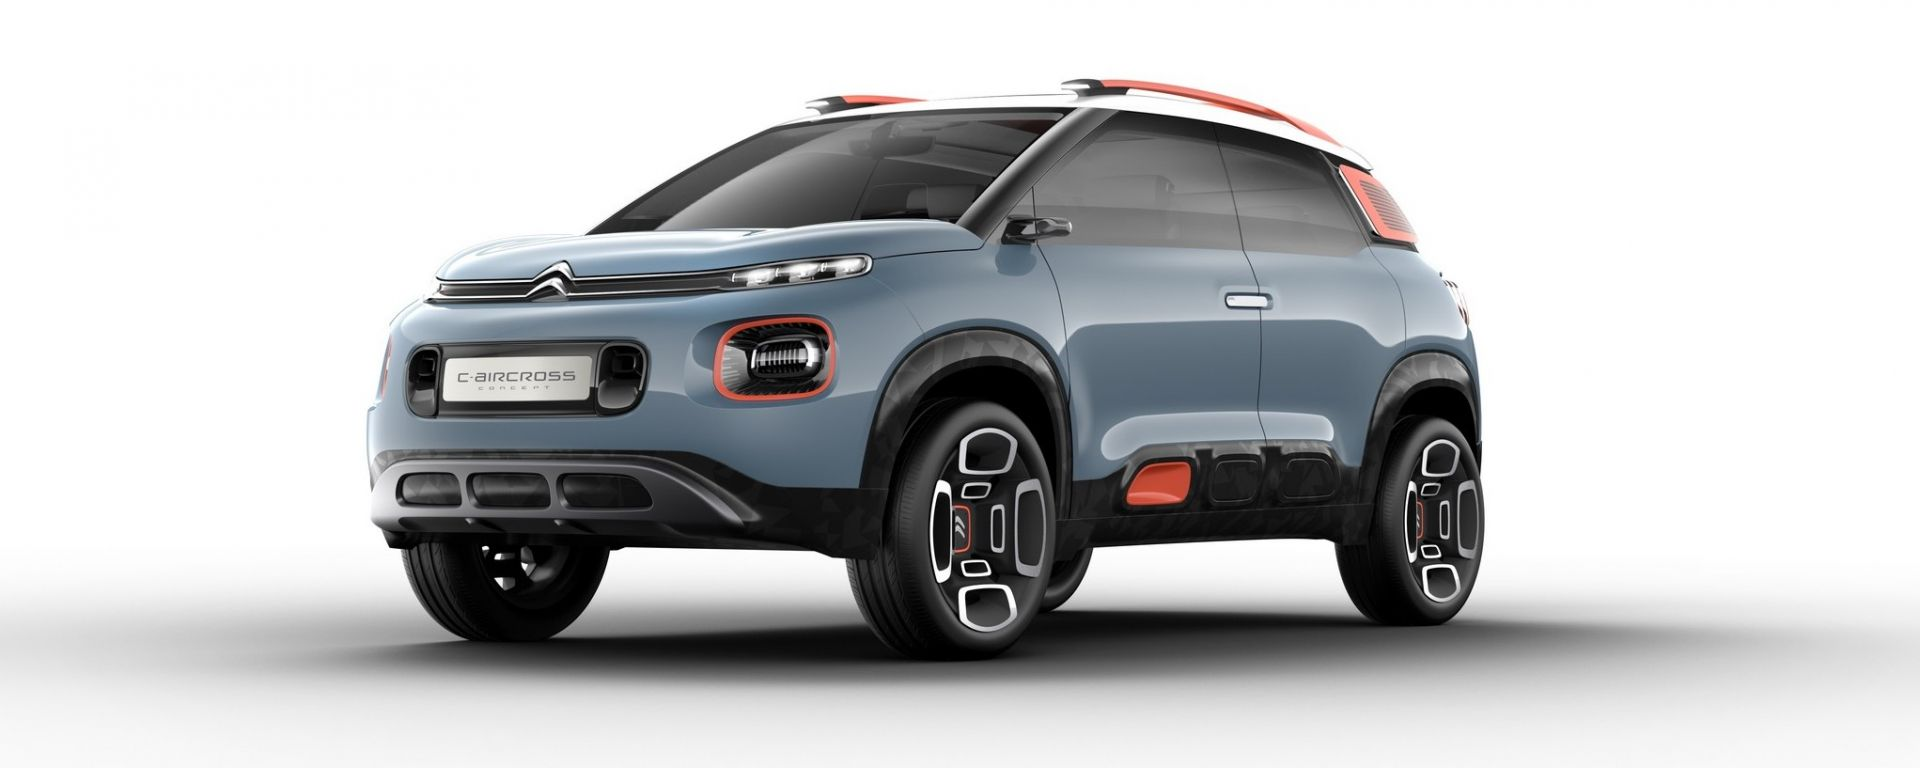 salone di ginevra 2017 citroen c aircross concept a ginevra col suv motorbox. Black Bedroom Furniture Sets. Home Design Ideas